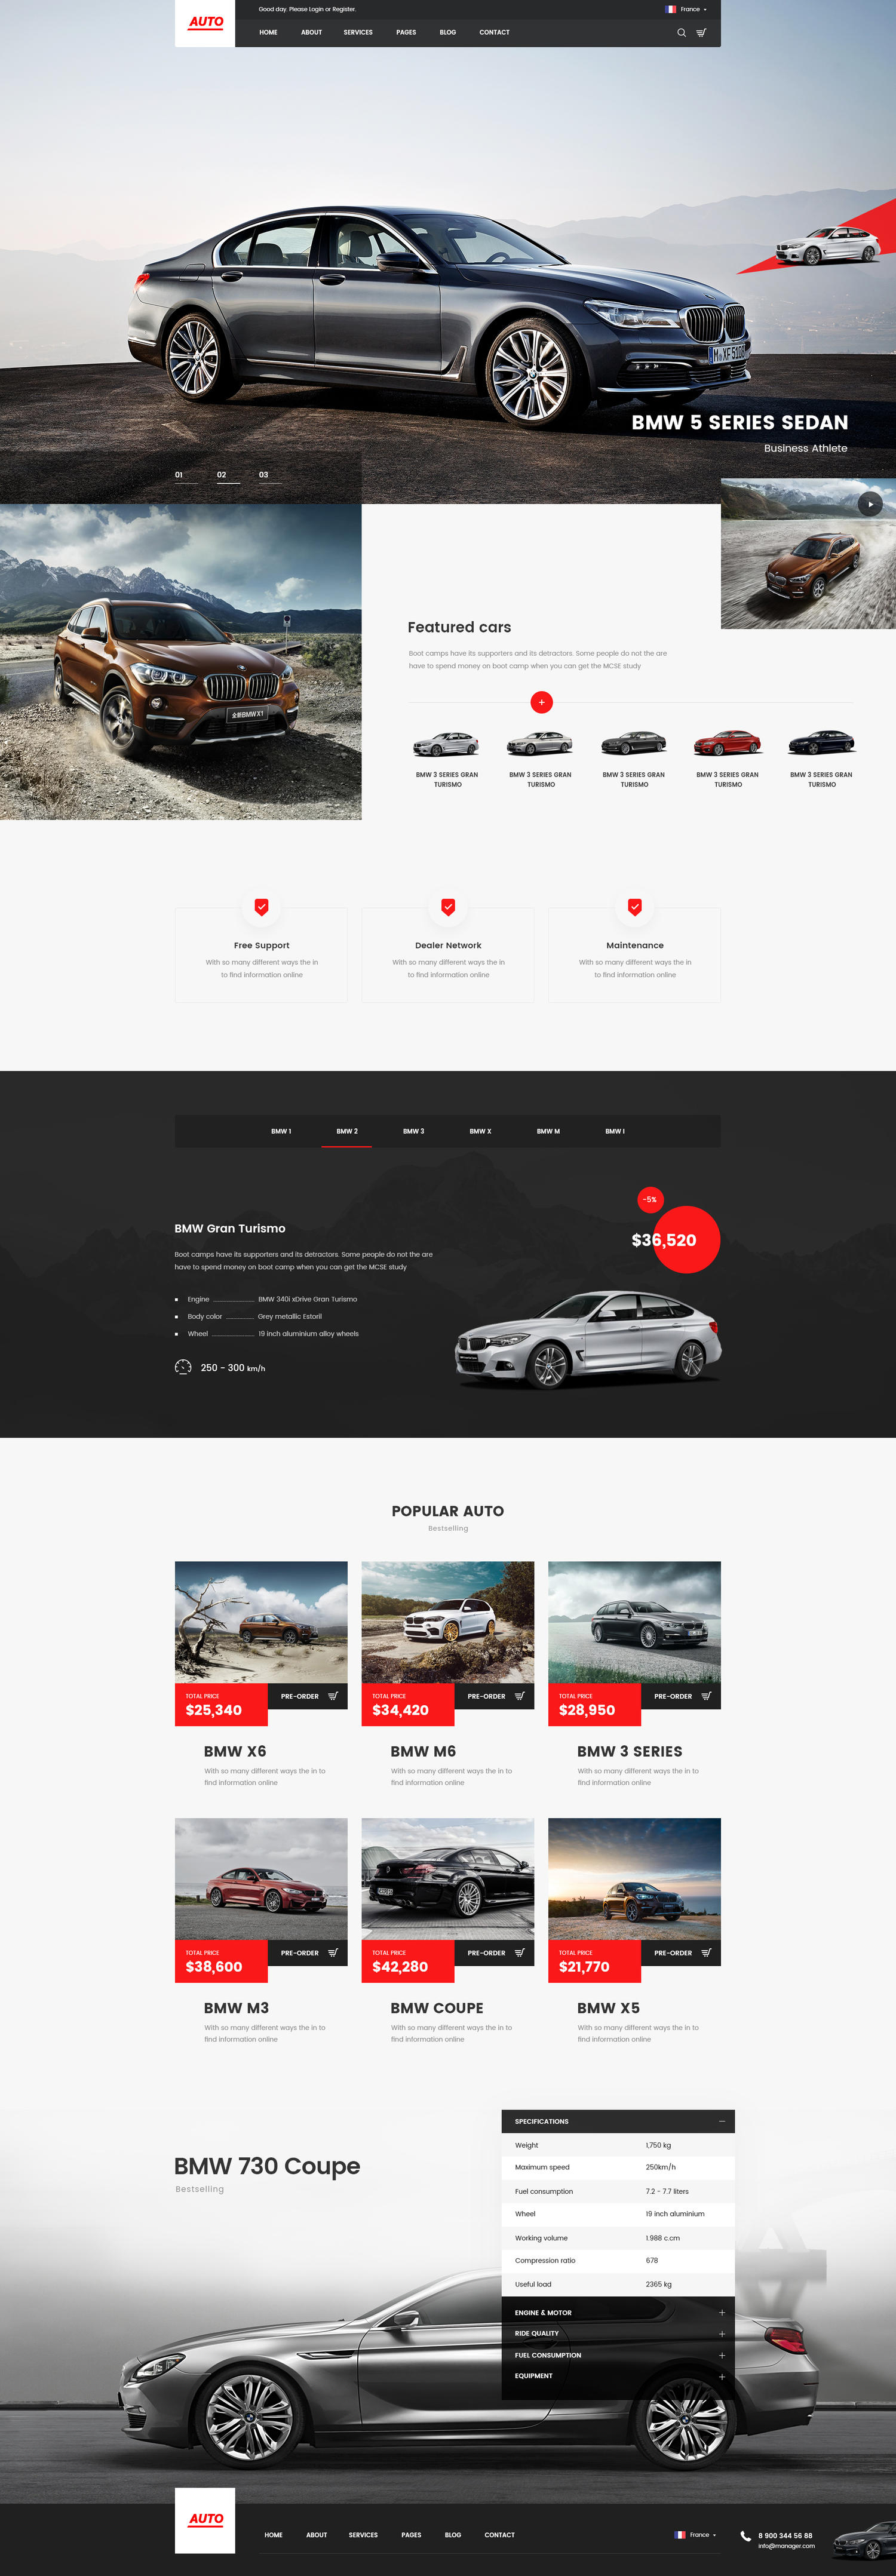 Professional Homepage Web Design / Redesign by Wexen - 103545